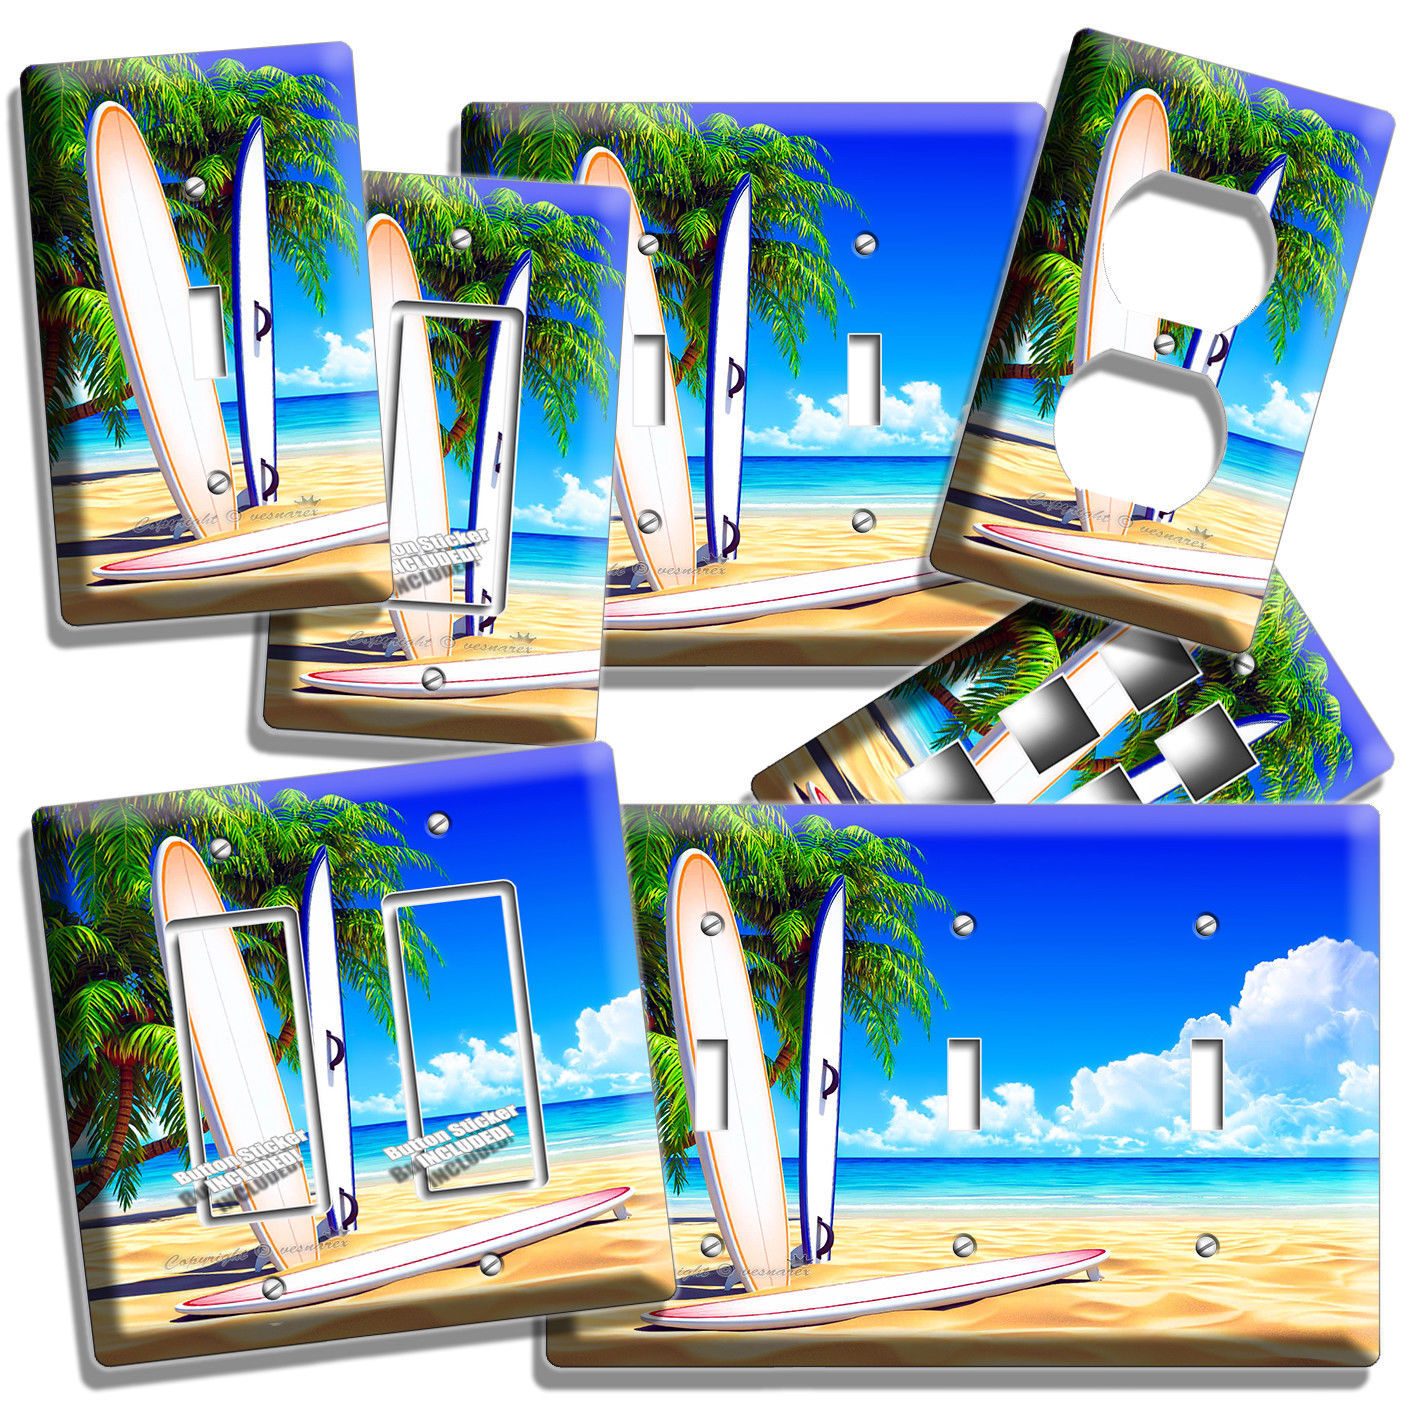 SURFING BOARDS OCEAN PALMS SANDY BEACH LIGHT SWITCH OUTLET WALL PLATE ROOM DECOR - $9.29 - $20.45